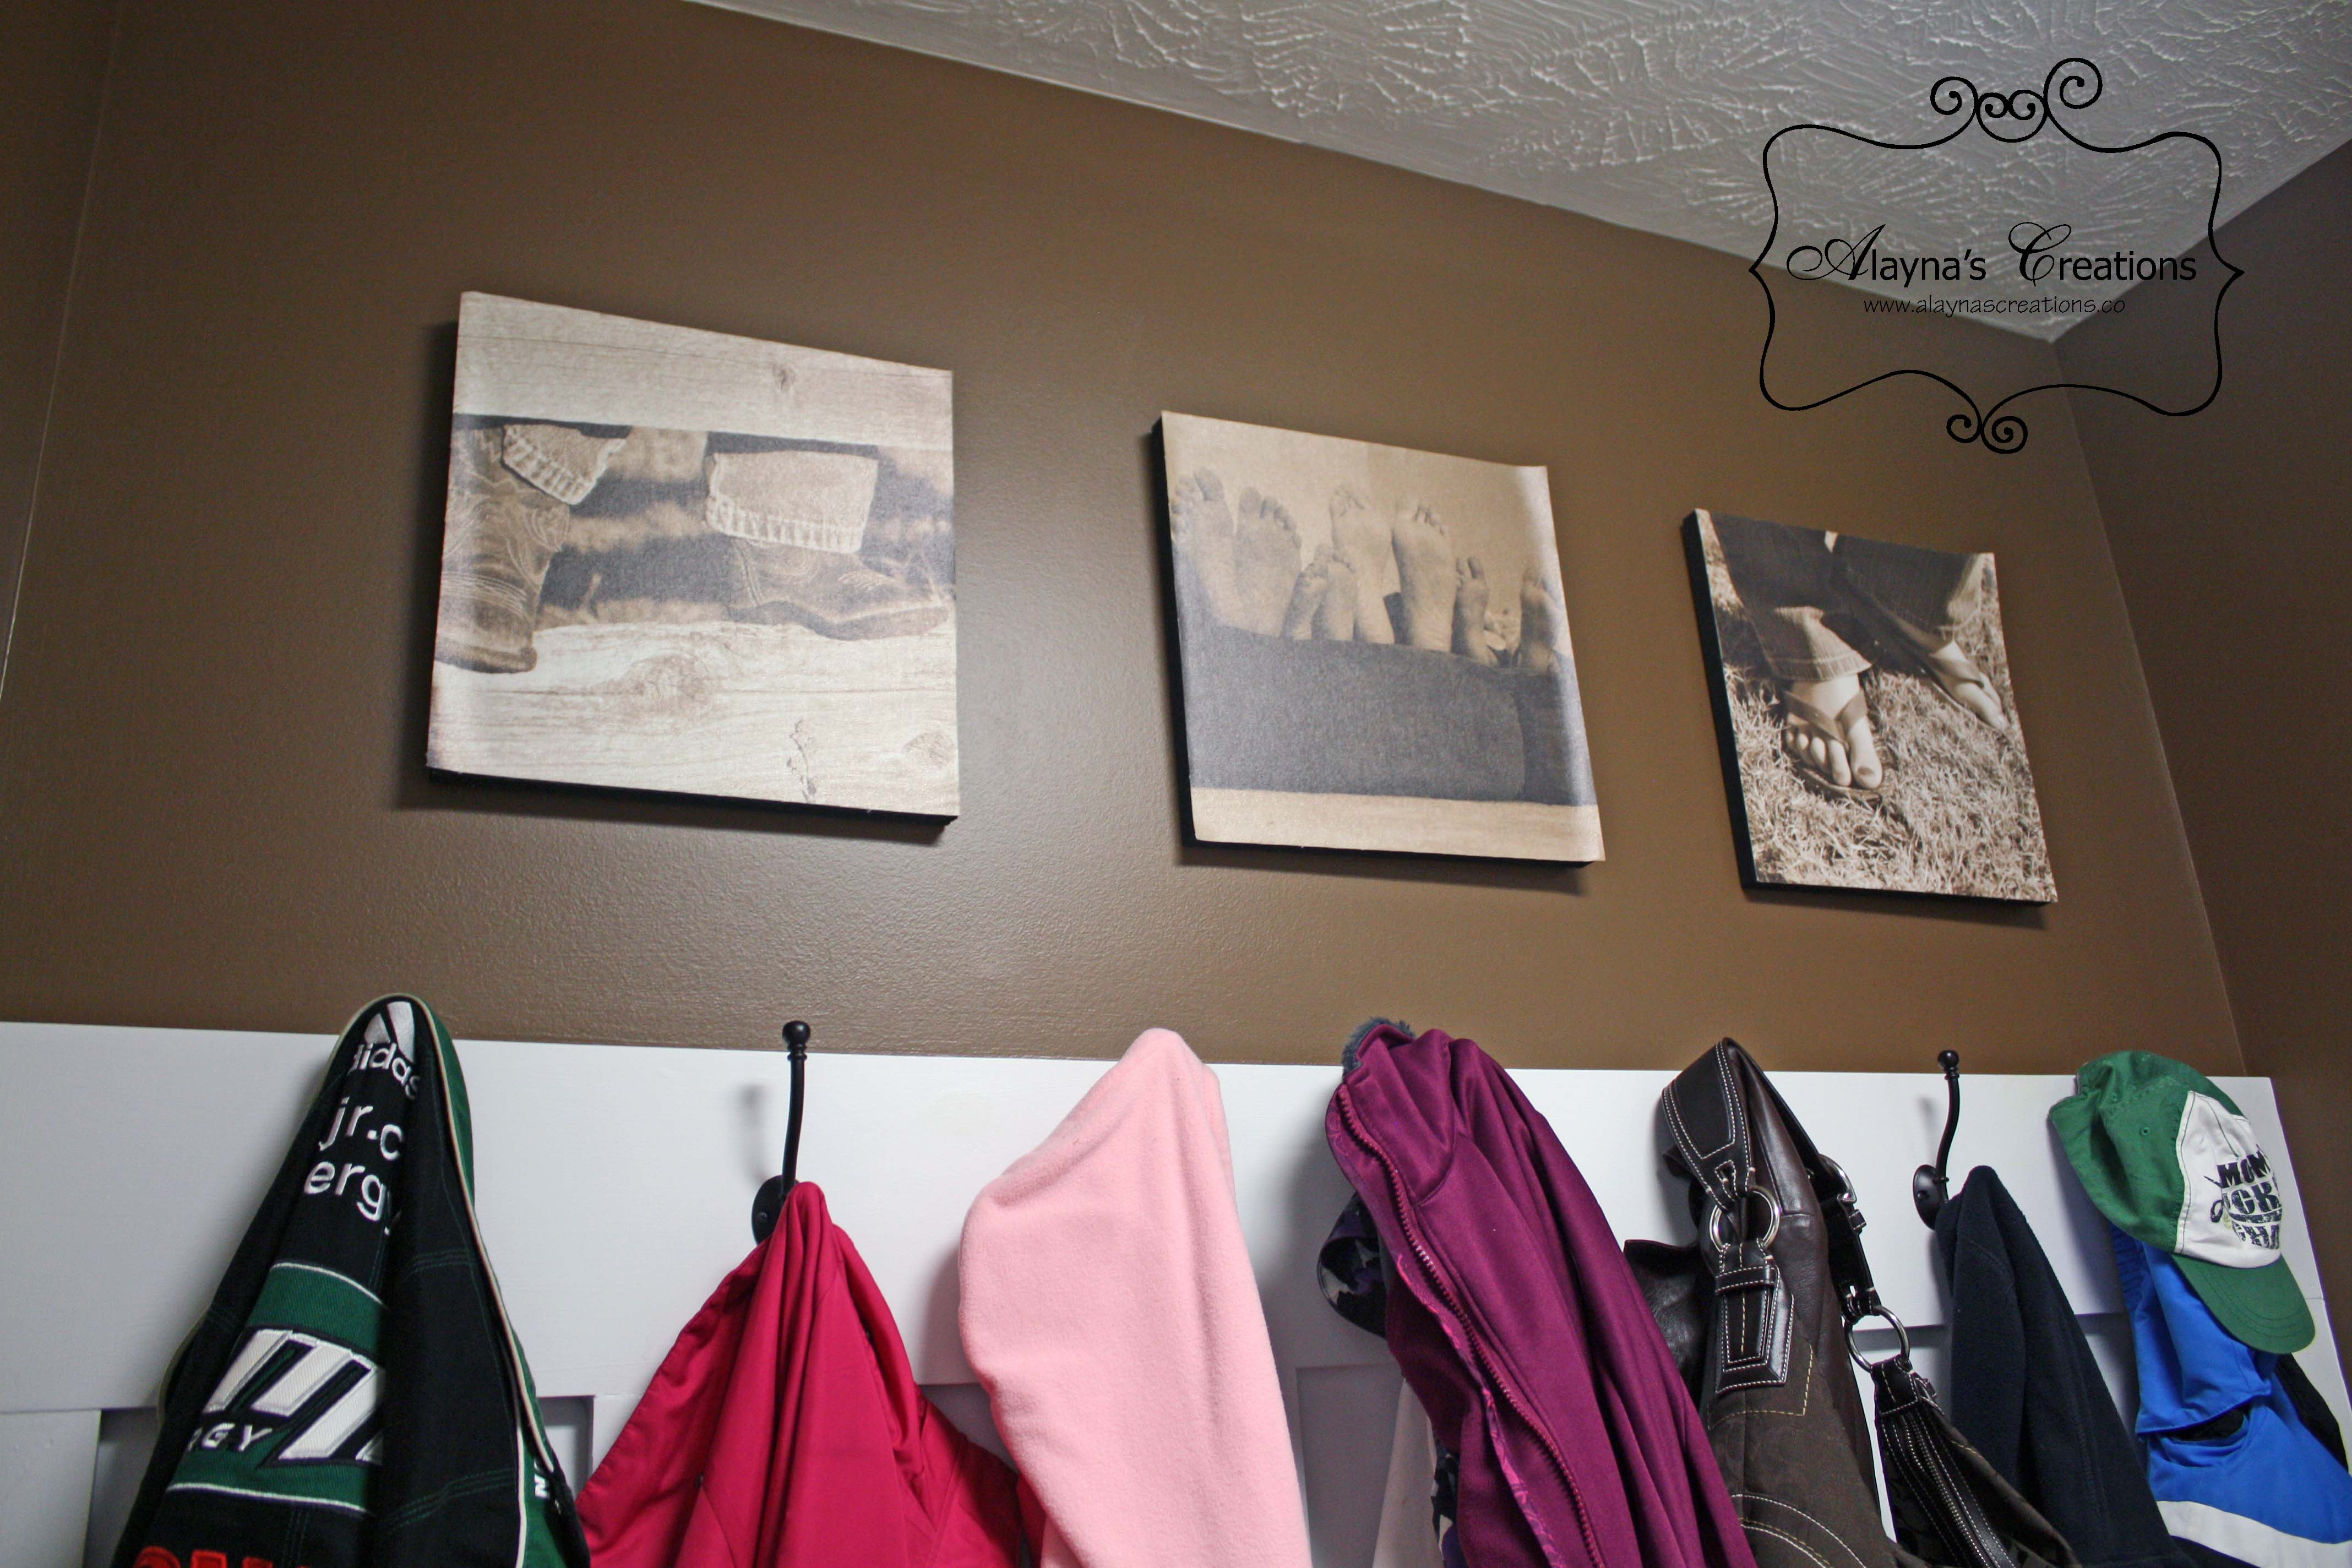 Laundry and mud room update diy home decor and crafts wall decor take close up photos of feet and shoes and mount them on the wall amipublicfo Gallery